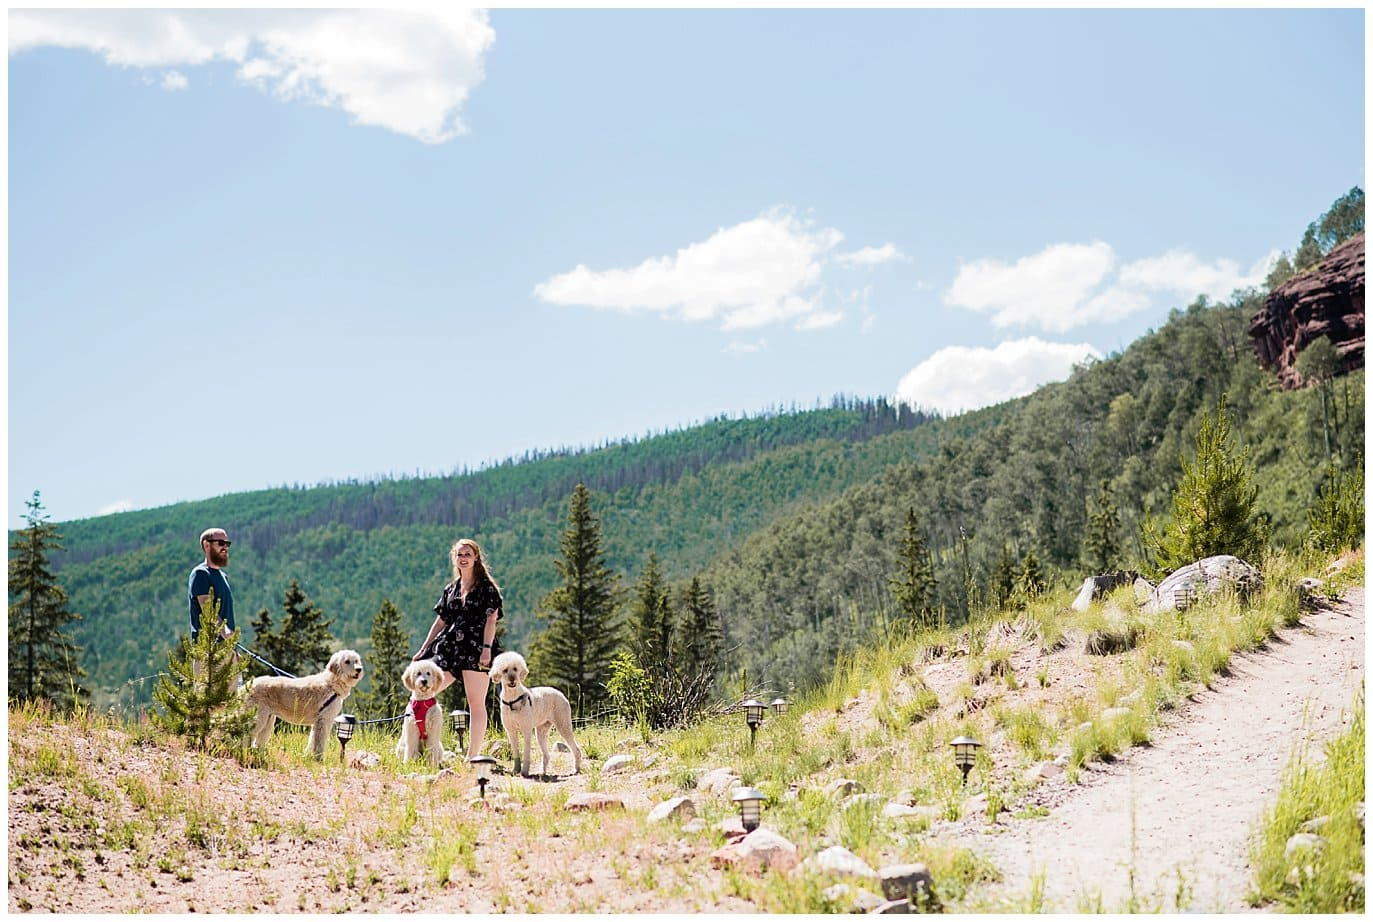 Dogs on hillside at Summer Piney River Ranch wedding by Vail wedding photographer Jennie Crate, Photographer